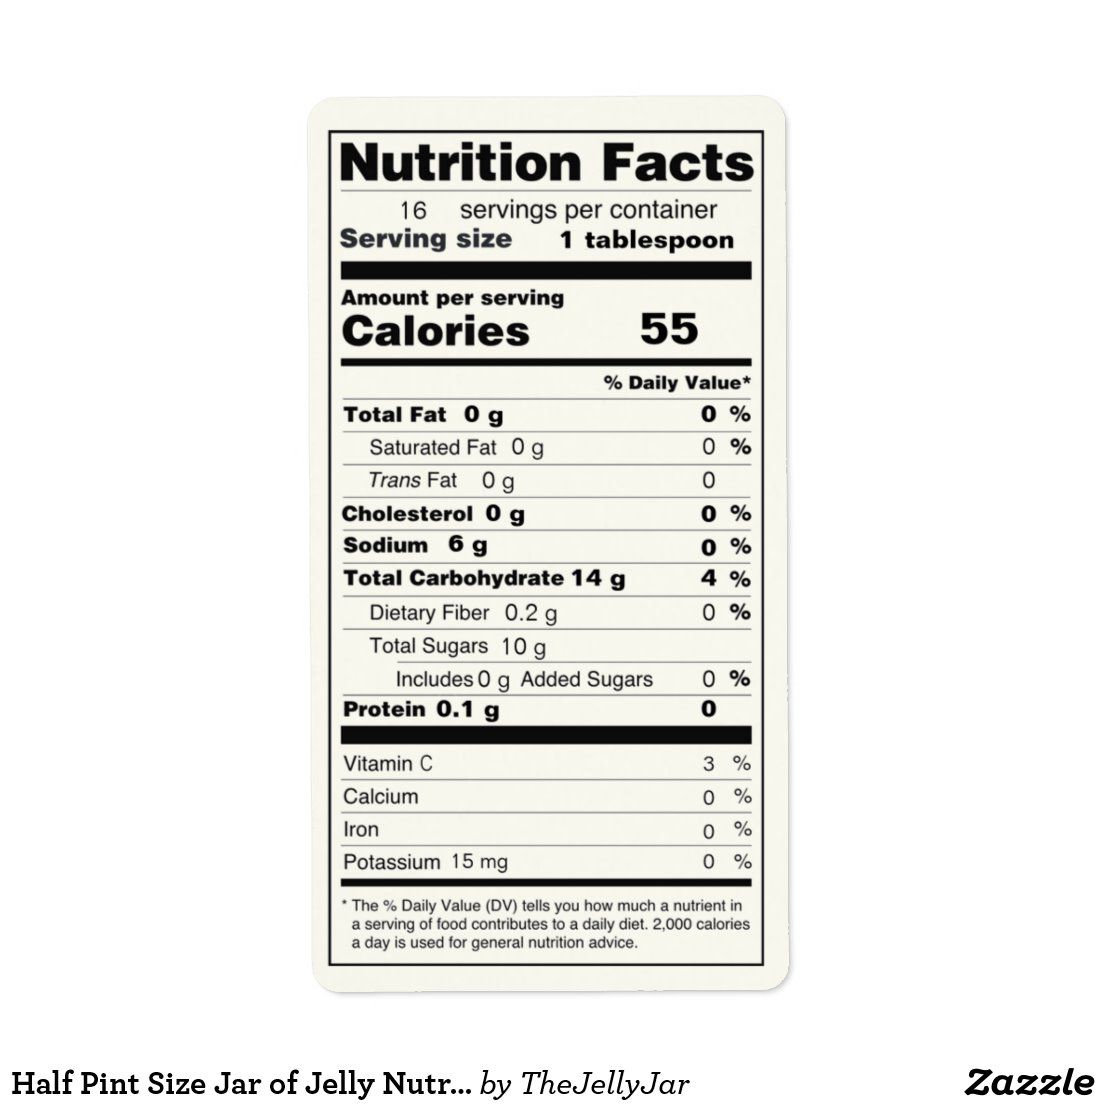 Half Pint Size Jar Of Jelly Nutrition Facts Label Zazzle Com In 2021 Nutrition Facts Label Food Nutrition Facts Nutrition Facts